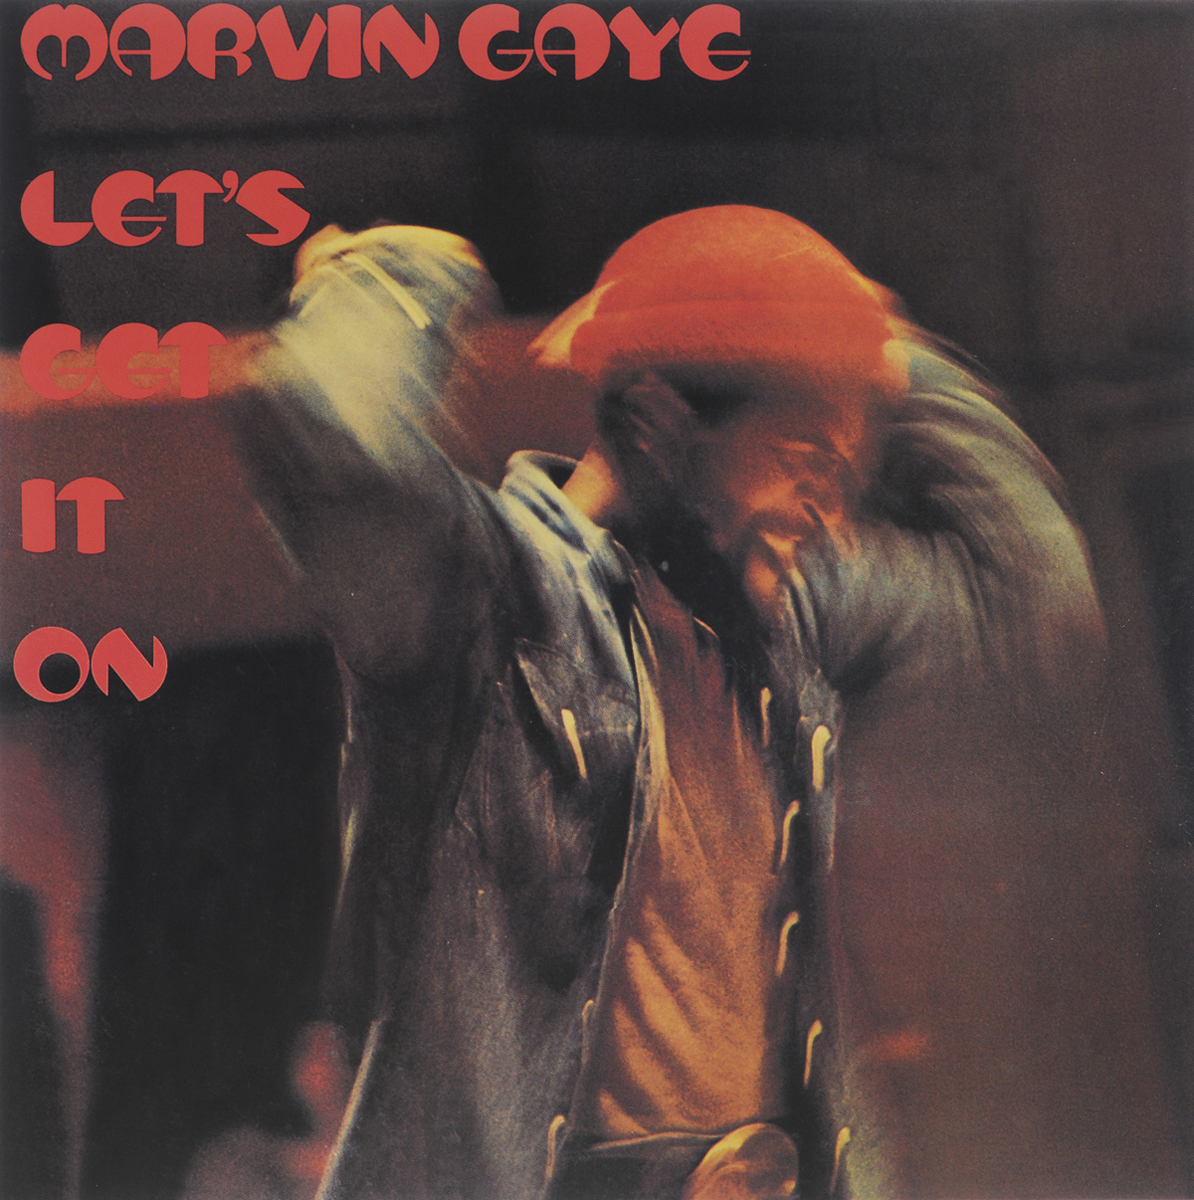 Марвин Гэй Marvin Gaye. Let's Get It On (LP) марвин гэй marvin gaye a tribute to the great nat king cole lp